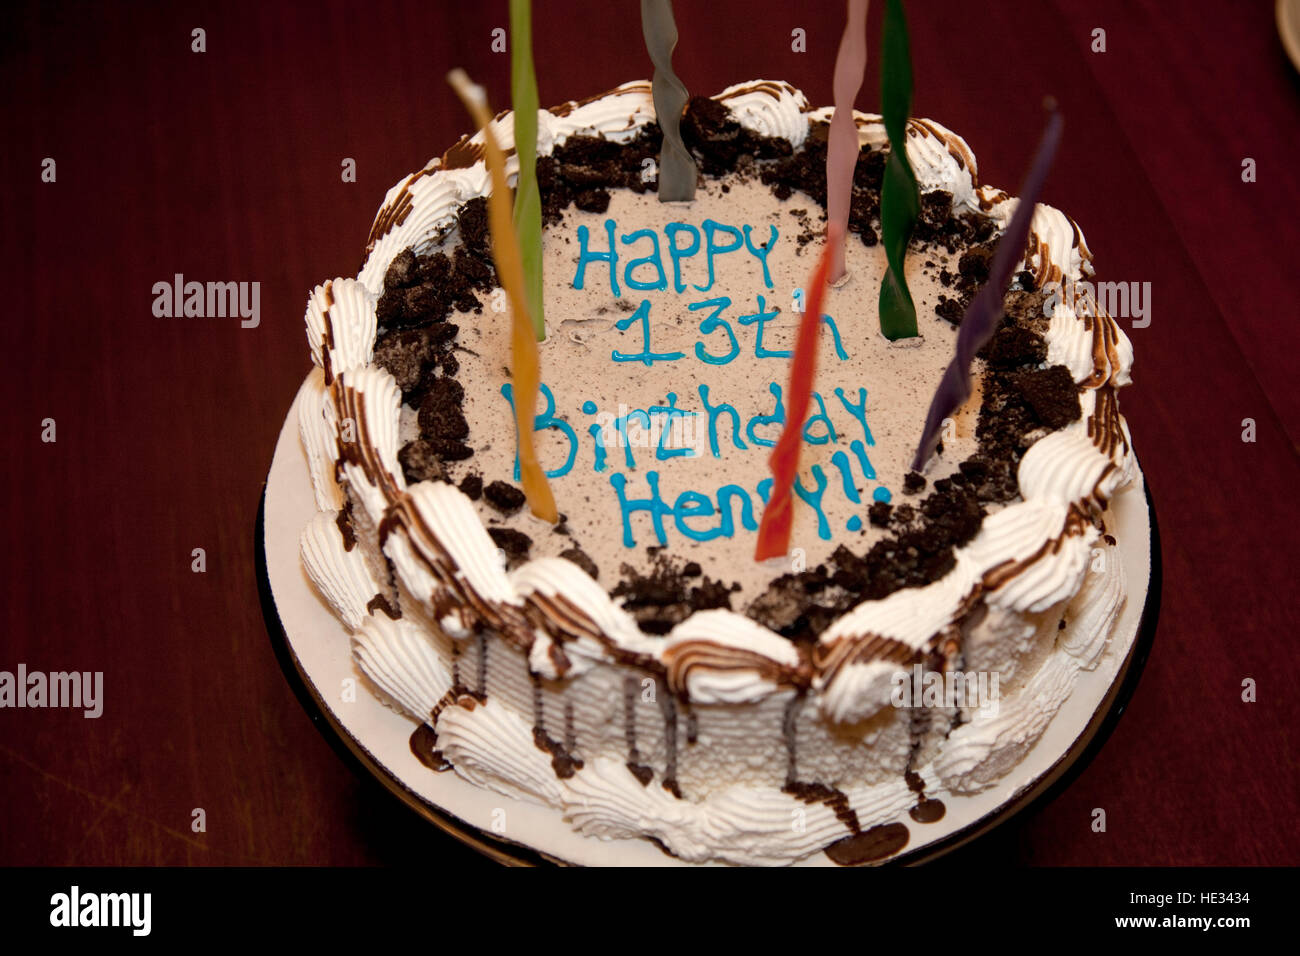 Decorative Happy Birthday Cake With Candles For A 13 Year Old Boy St Paul Minnesota Mn Usa Stock Photo Alamy